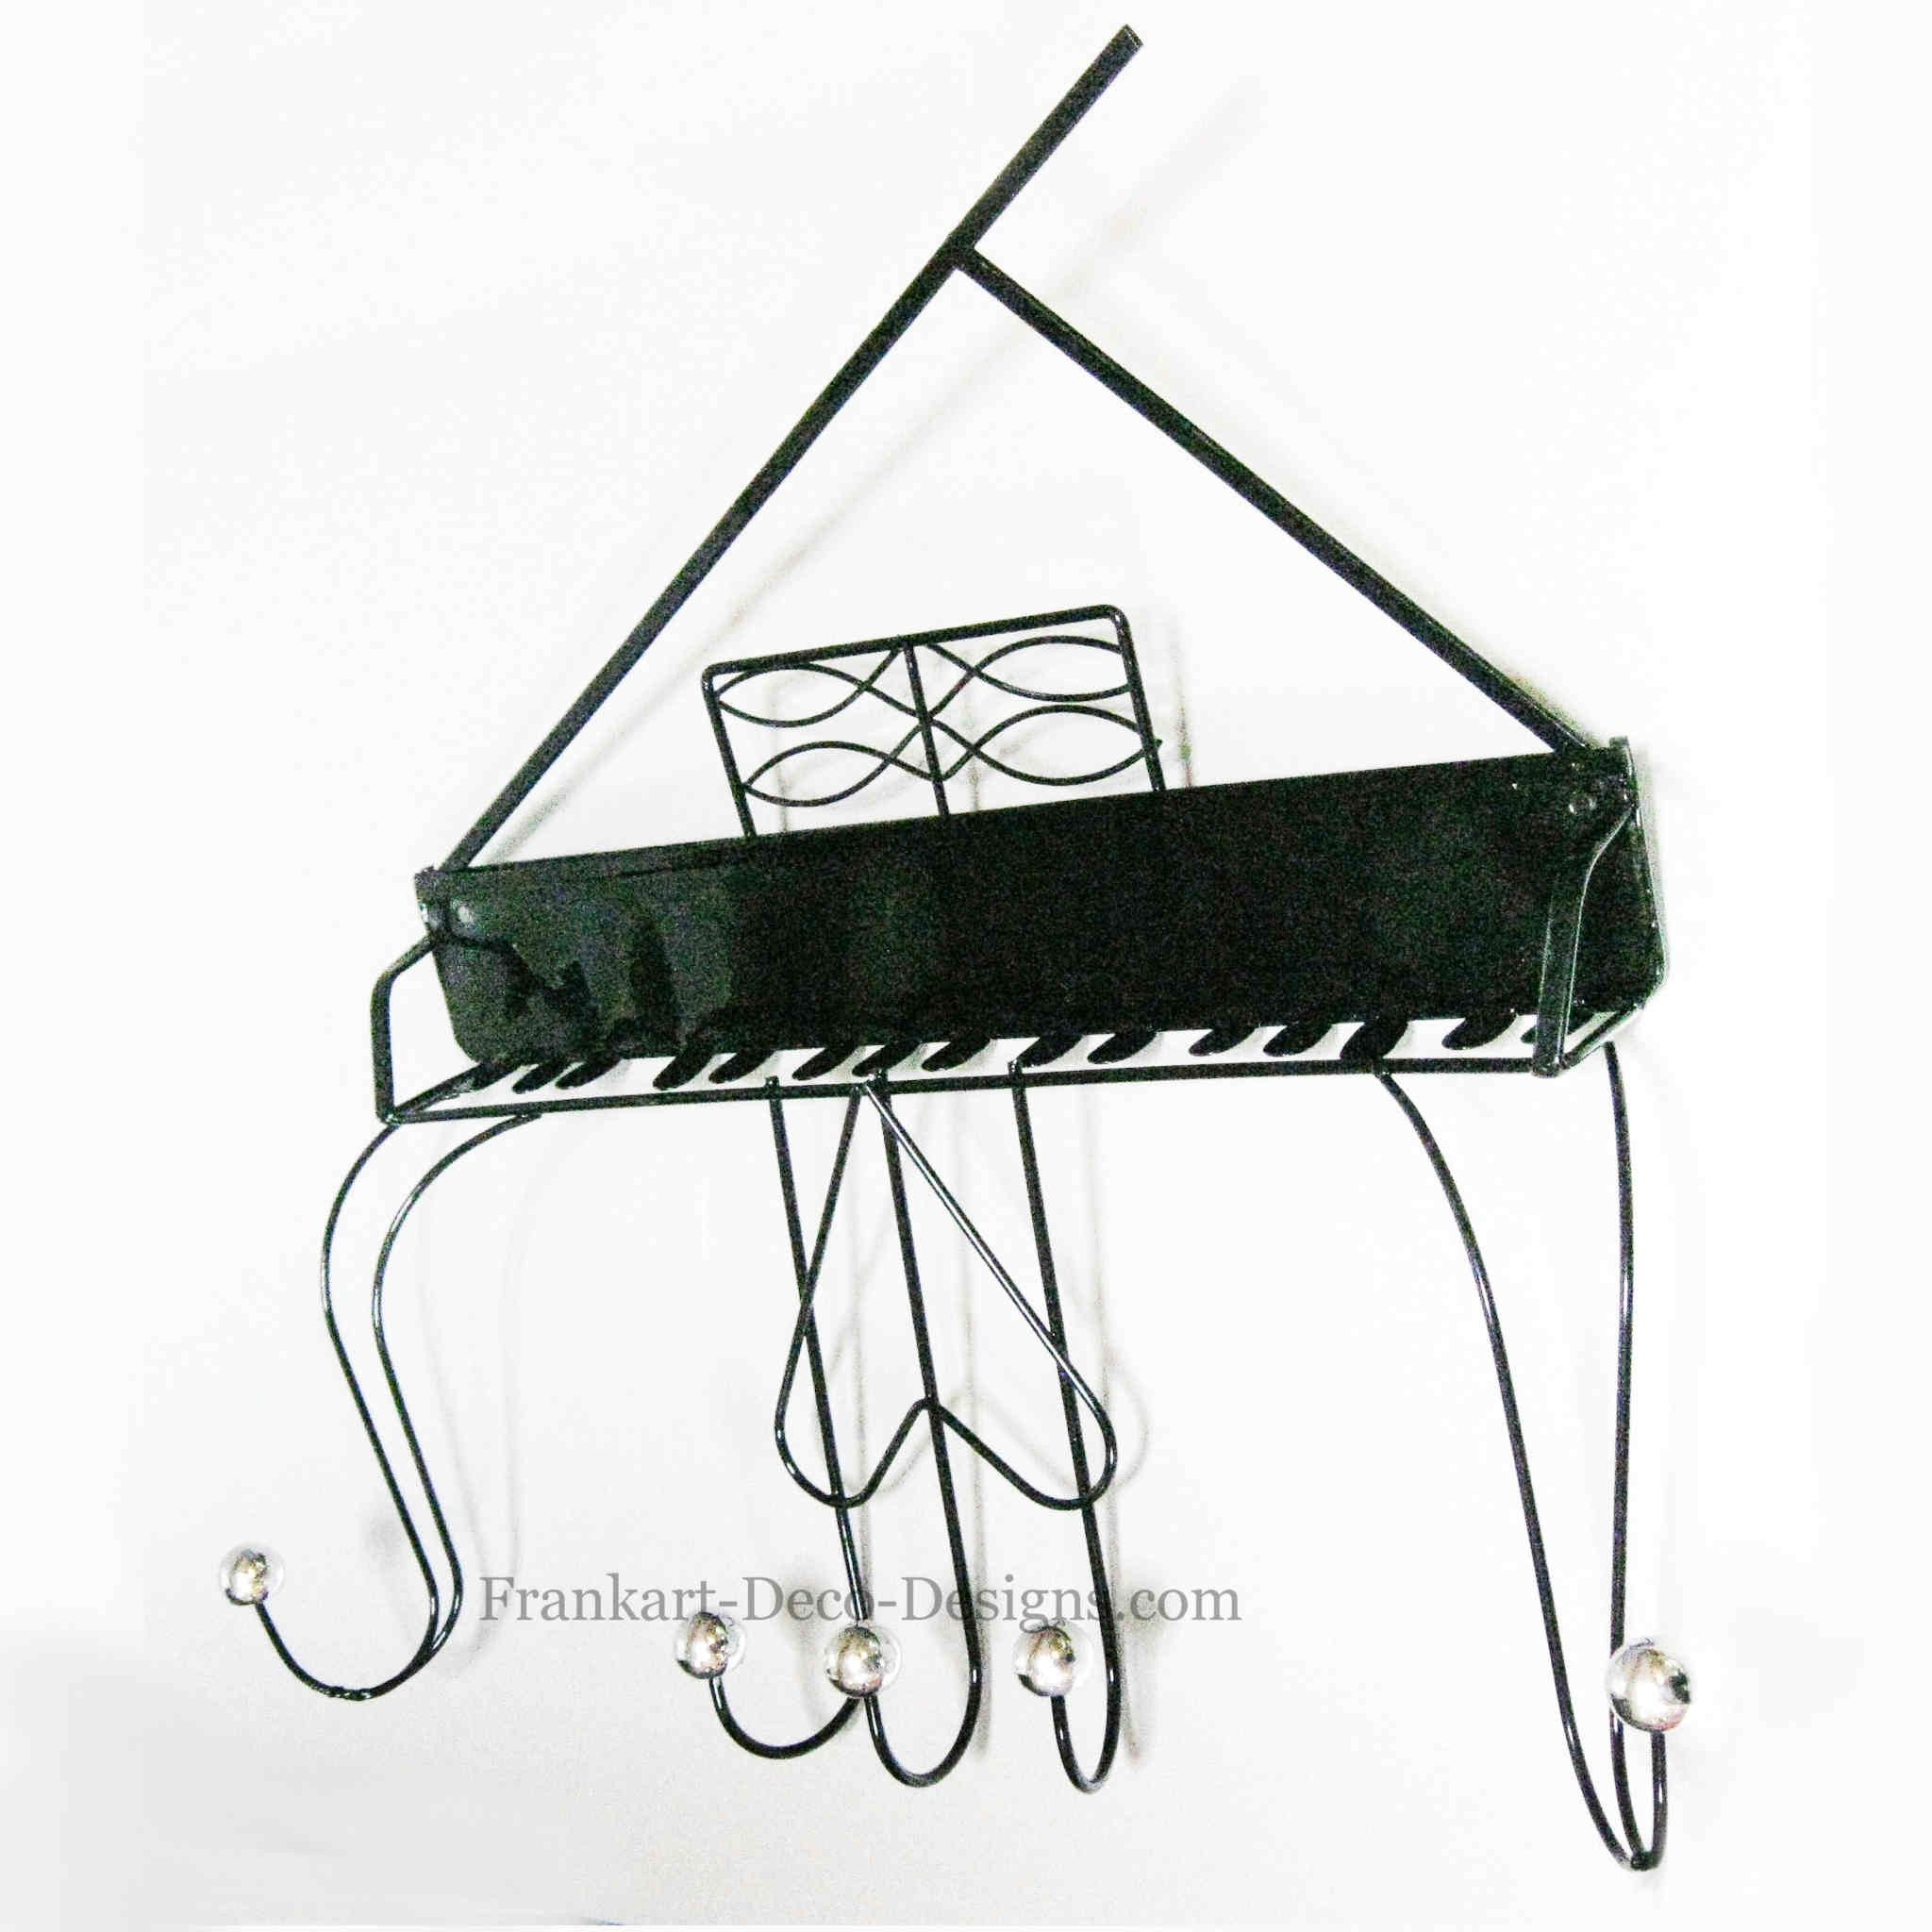 2048x2048 Grand Piano 19 Eames Style Steel Sculpture Wall Coat Rack Grand